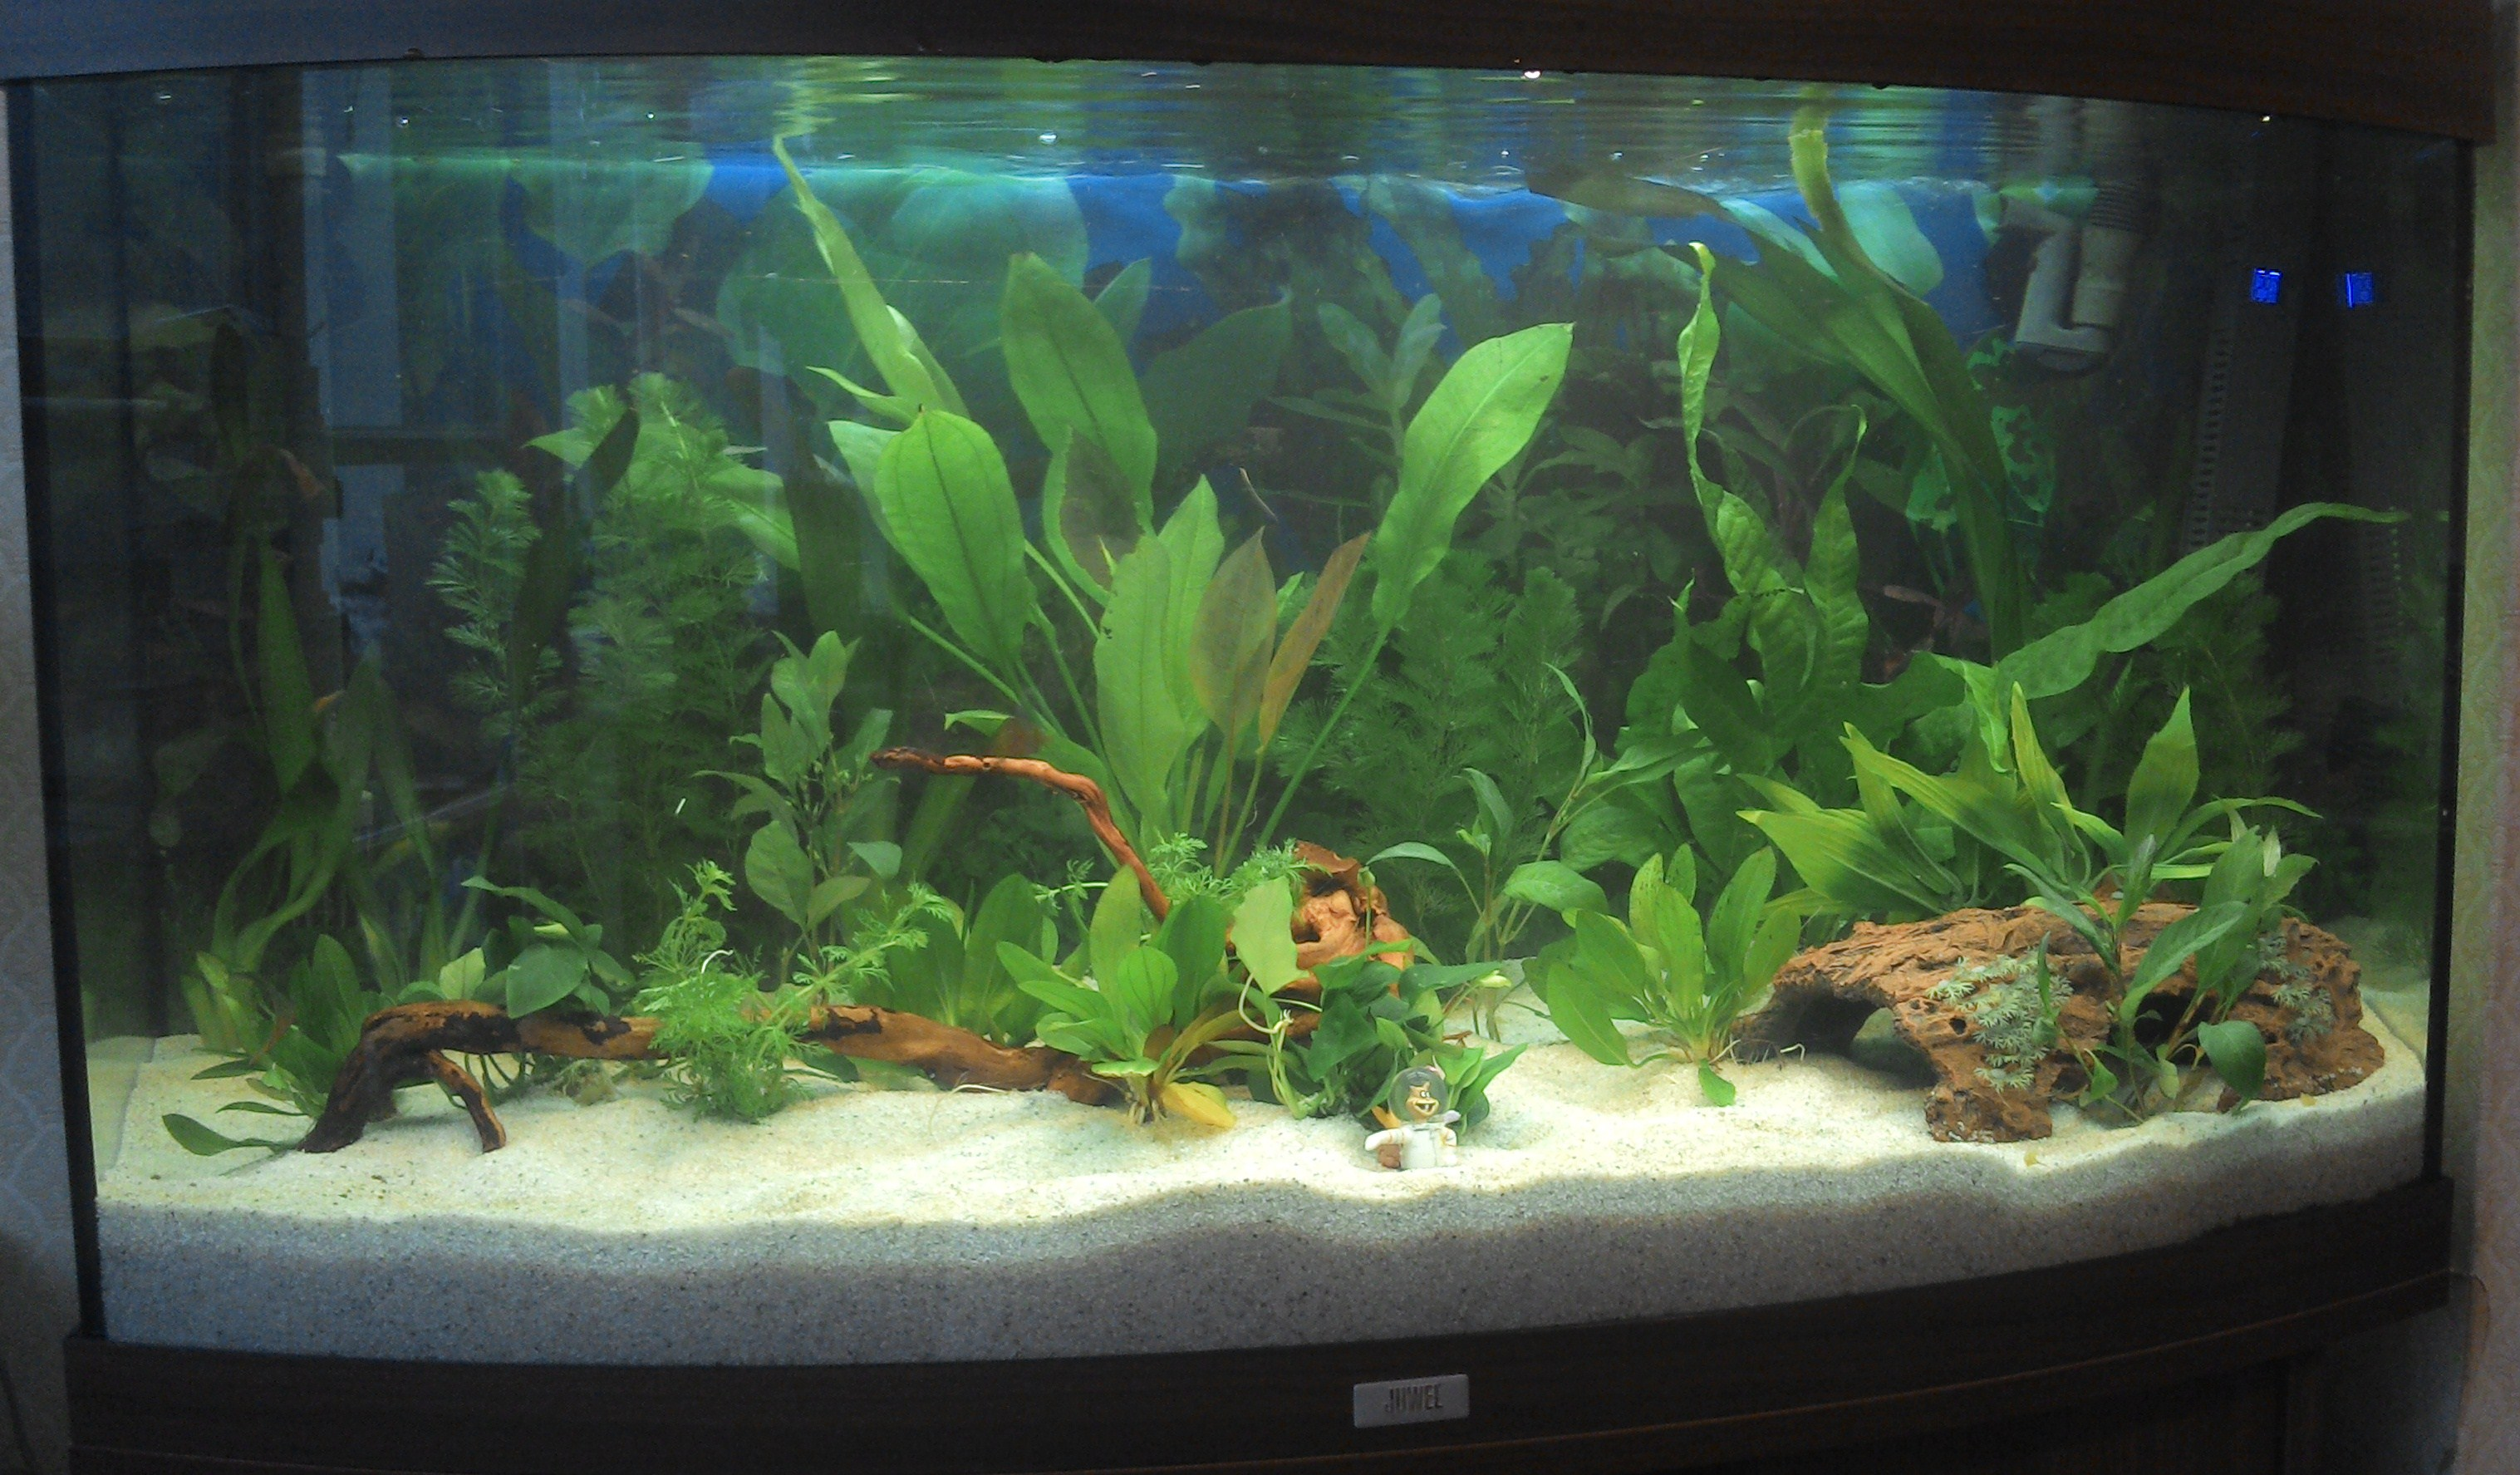 ... CO2 plants and cleaning prior to planting. [Forums - Aquarium Plants